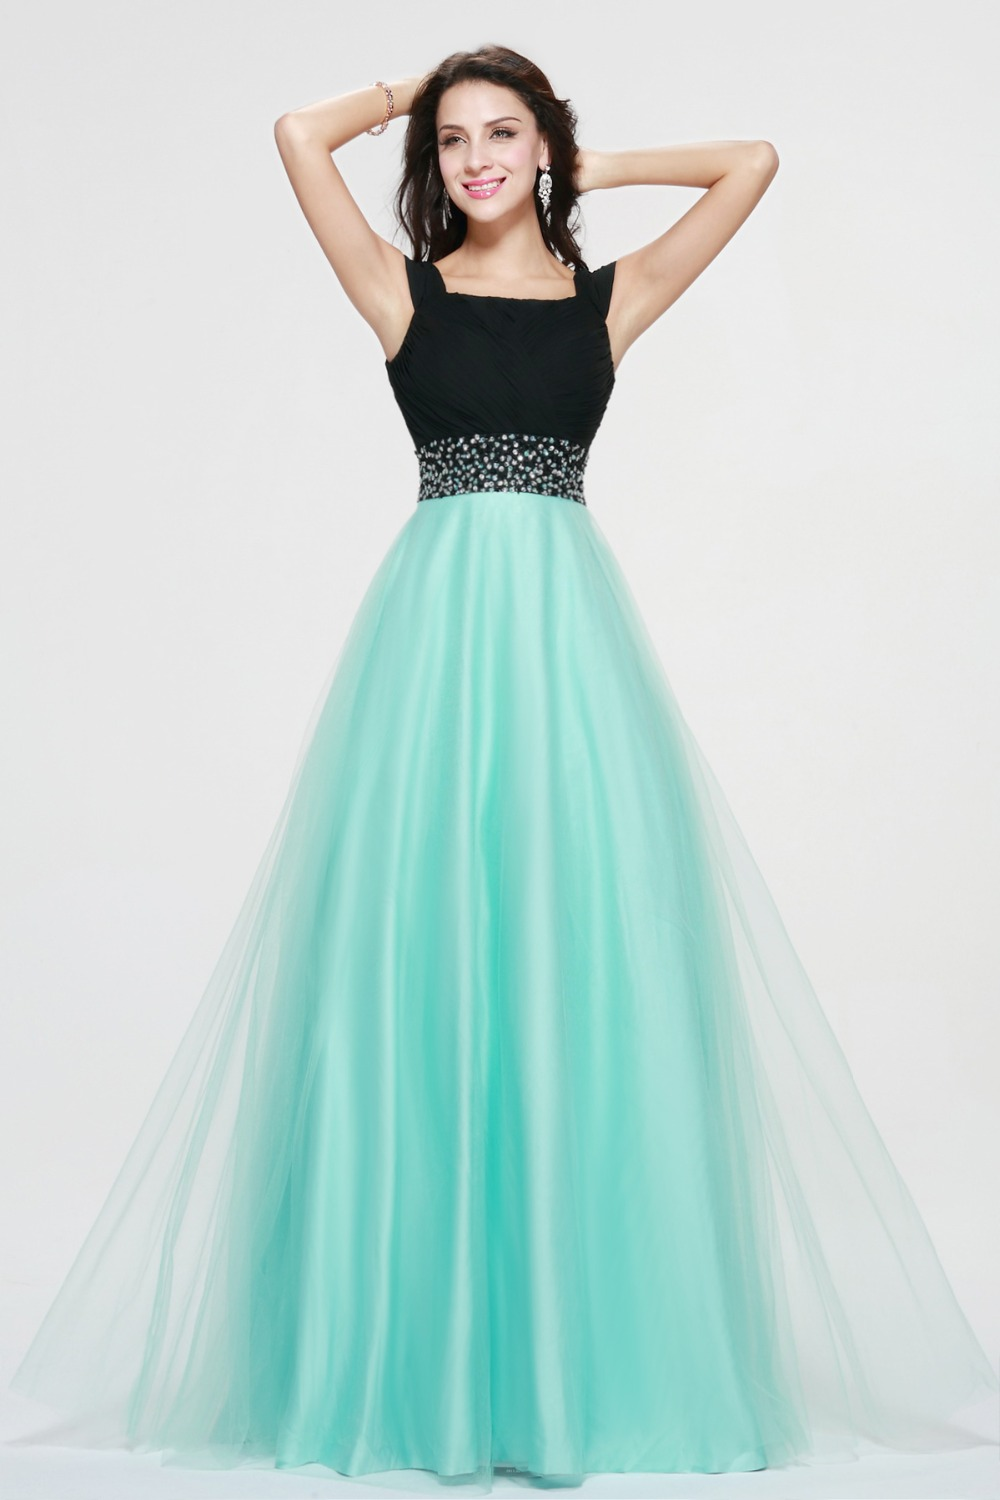 Awesome Dresses For A Formal Party Pictures - All Wedding Dresses ...